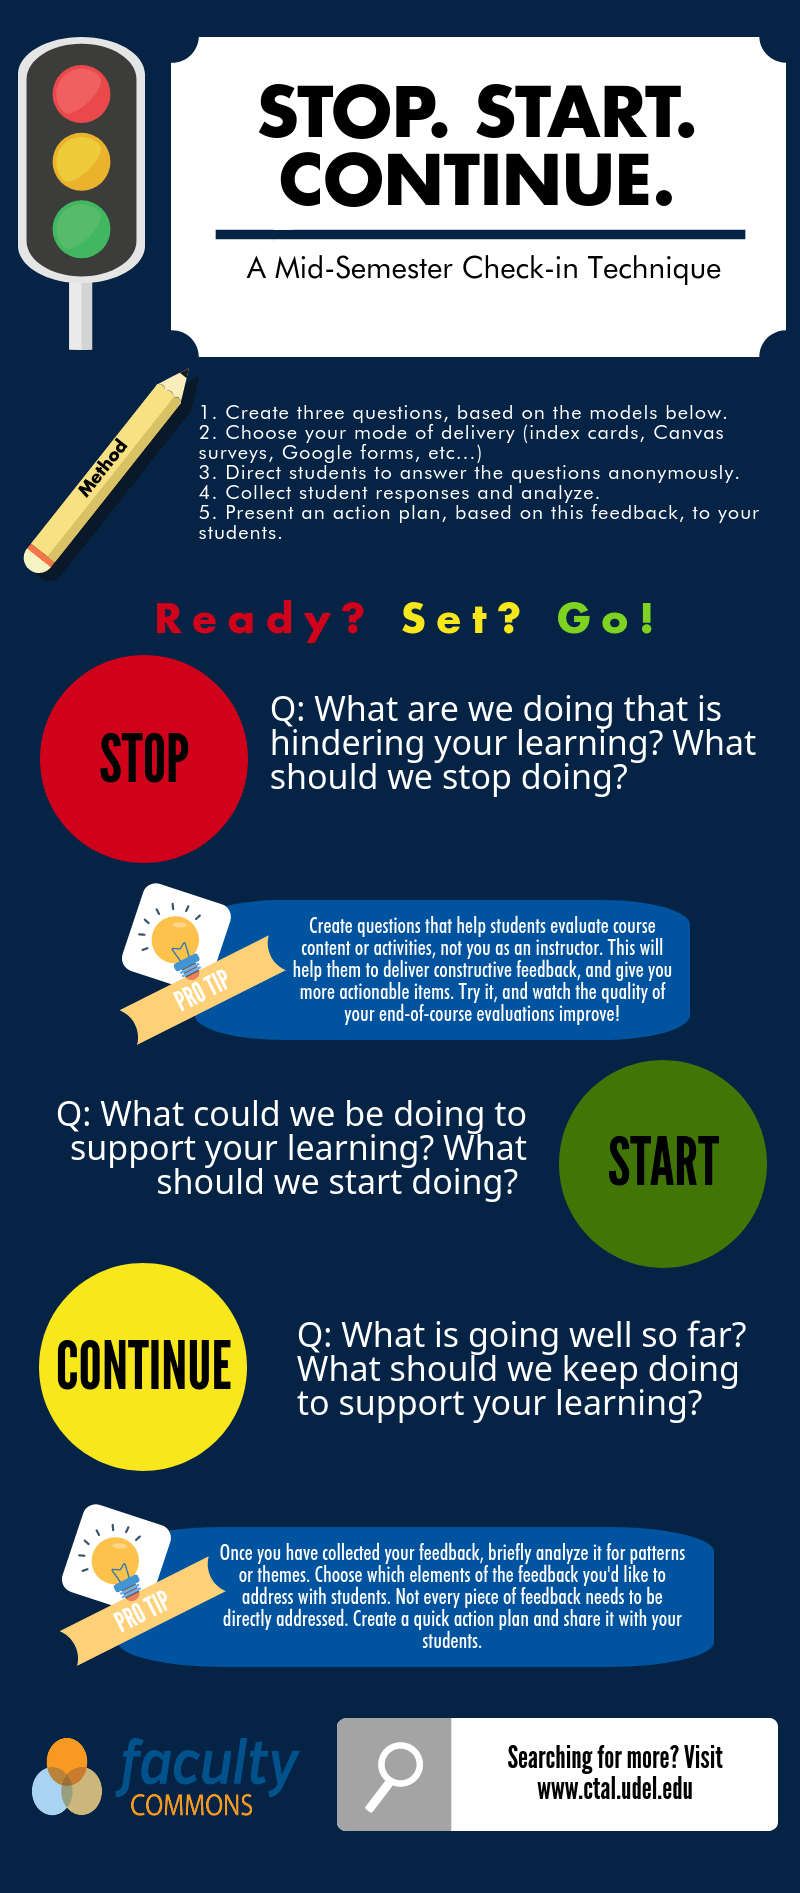 An infographic describing the steps to performing a mid-semester check-in technique: Stop. Start. Continue.